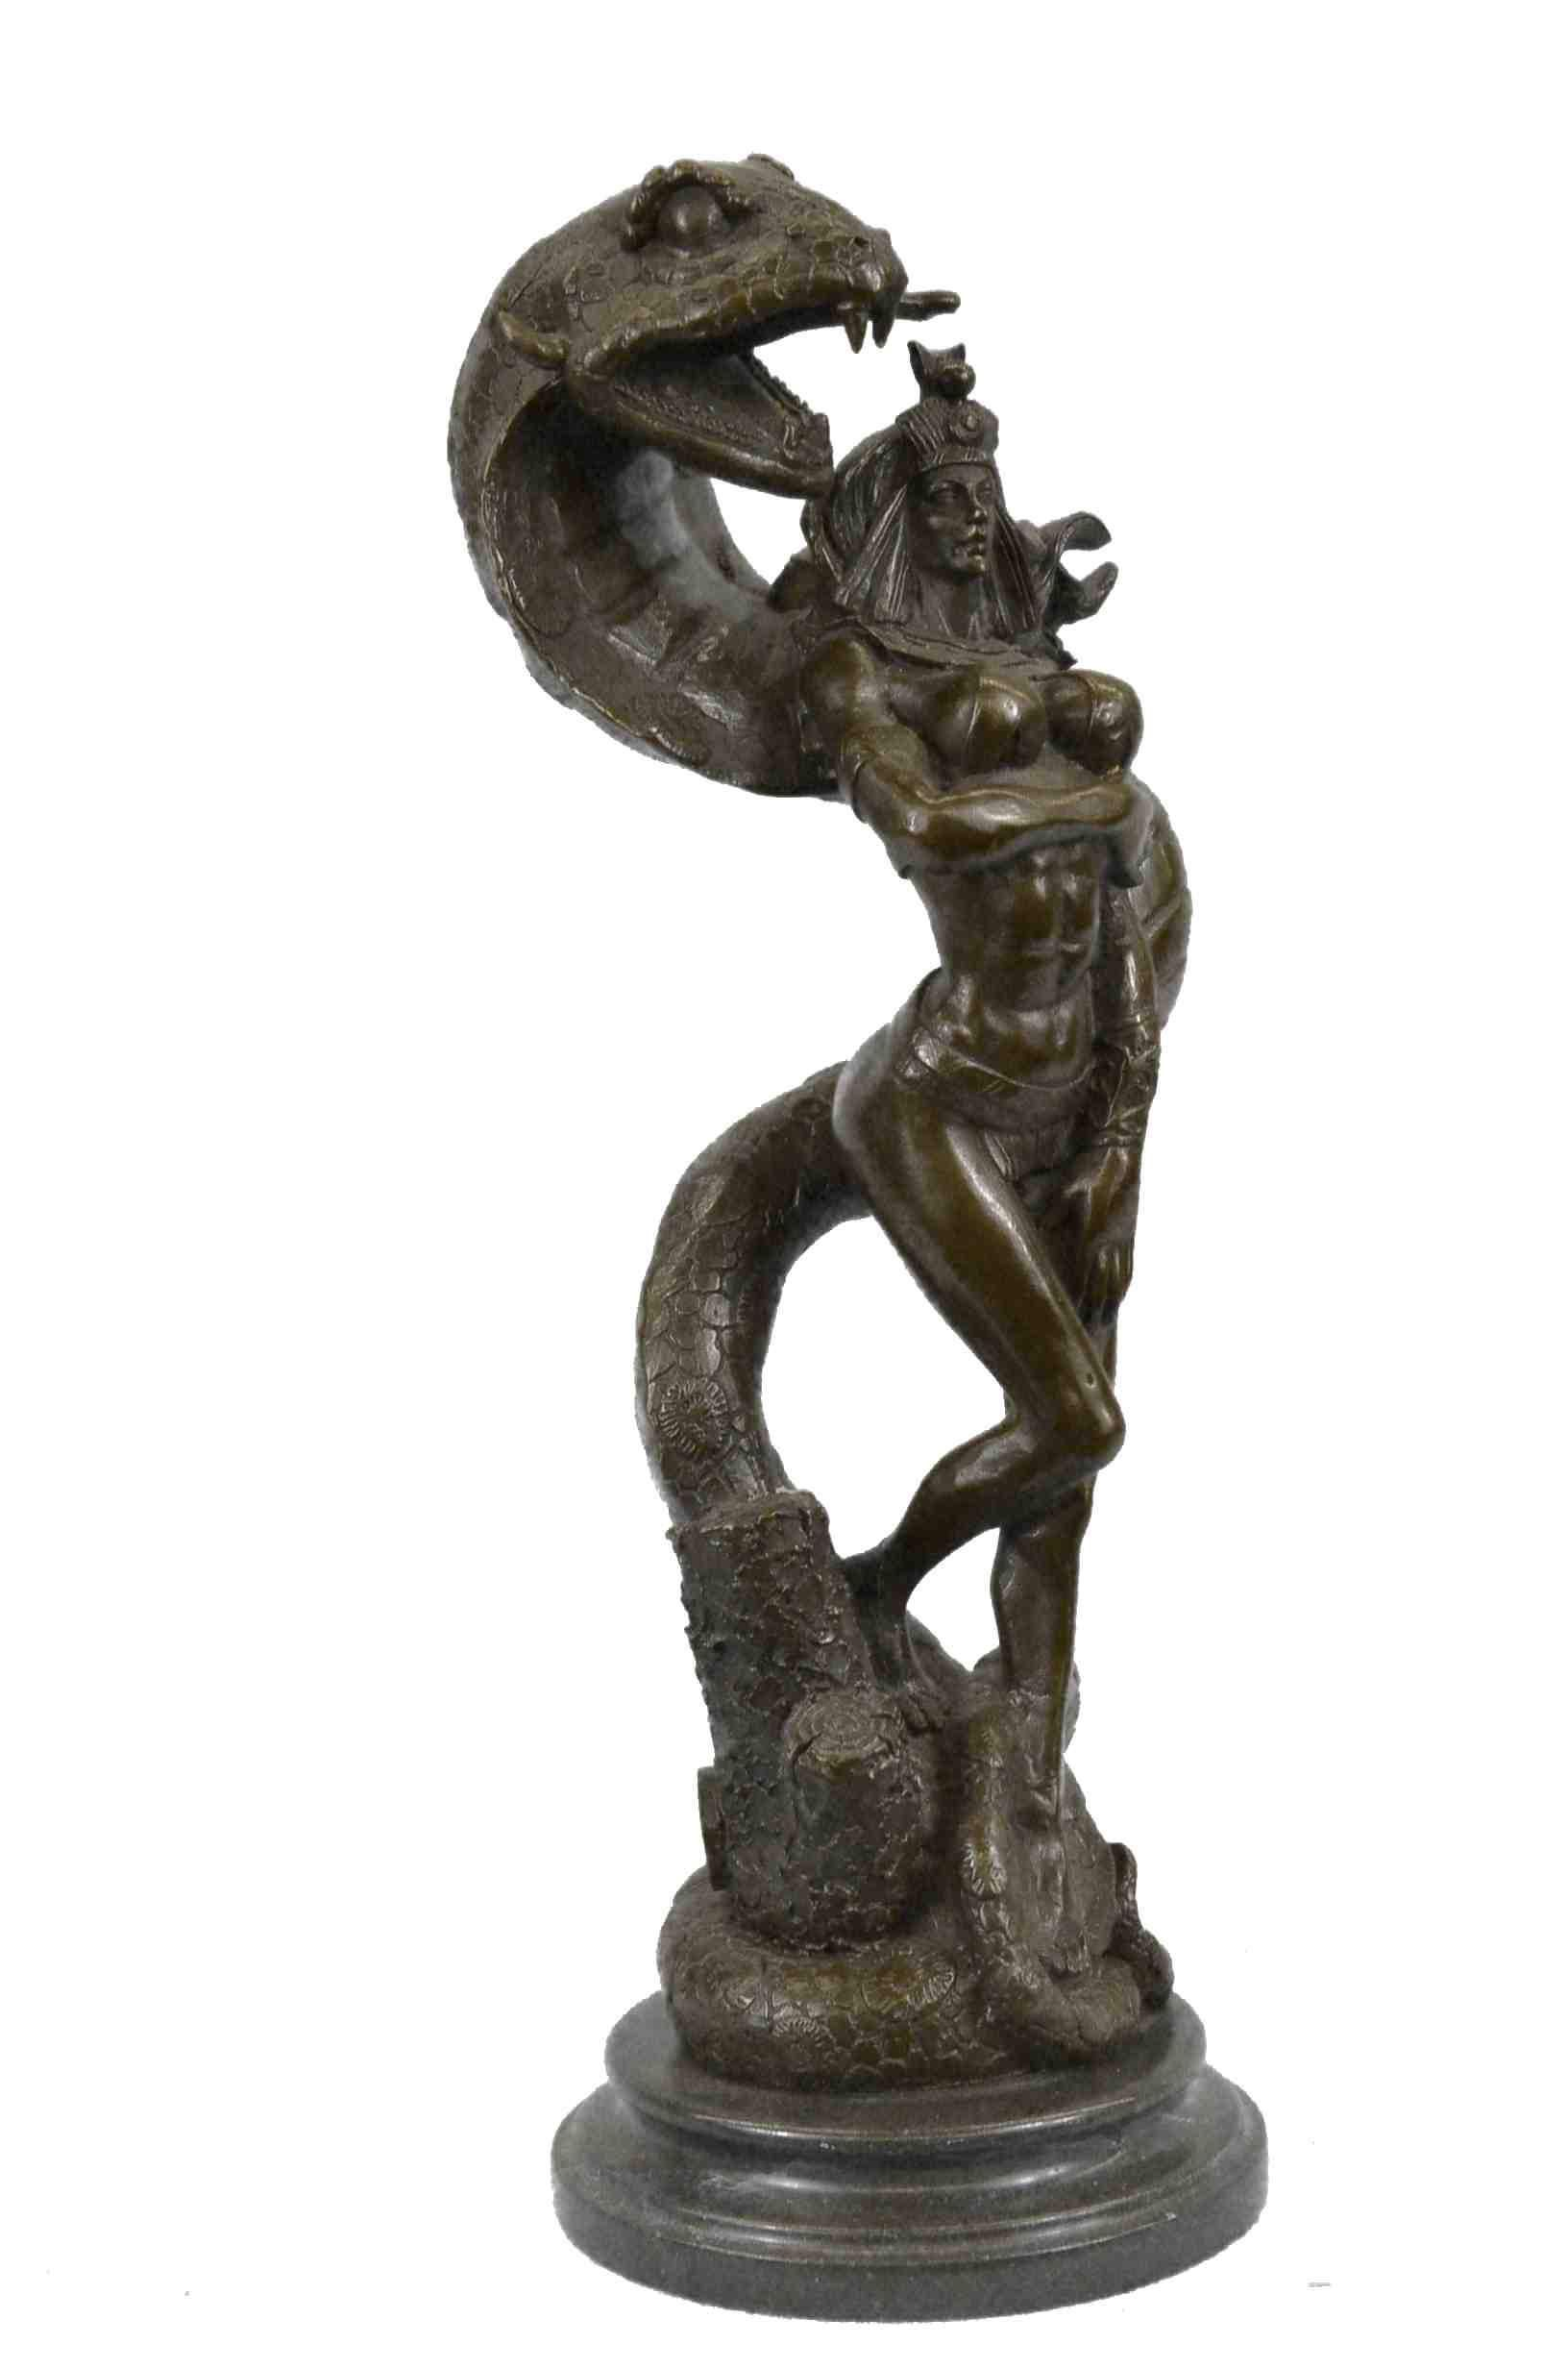 Real Bronze Metal Statue on Marble Base Female Lion Sculpture Art Deco Figurine